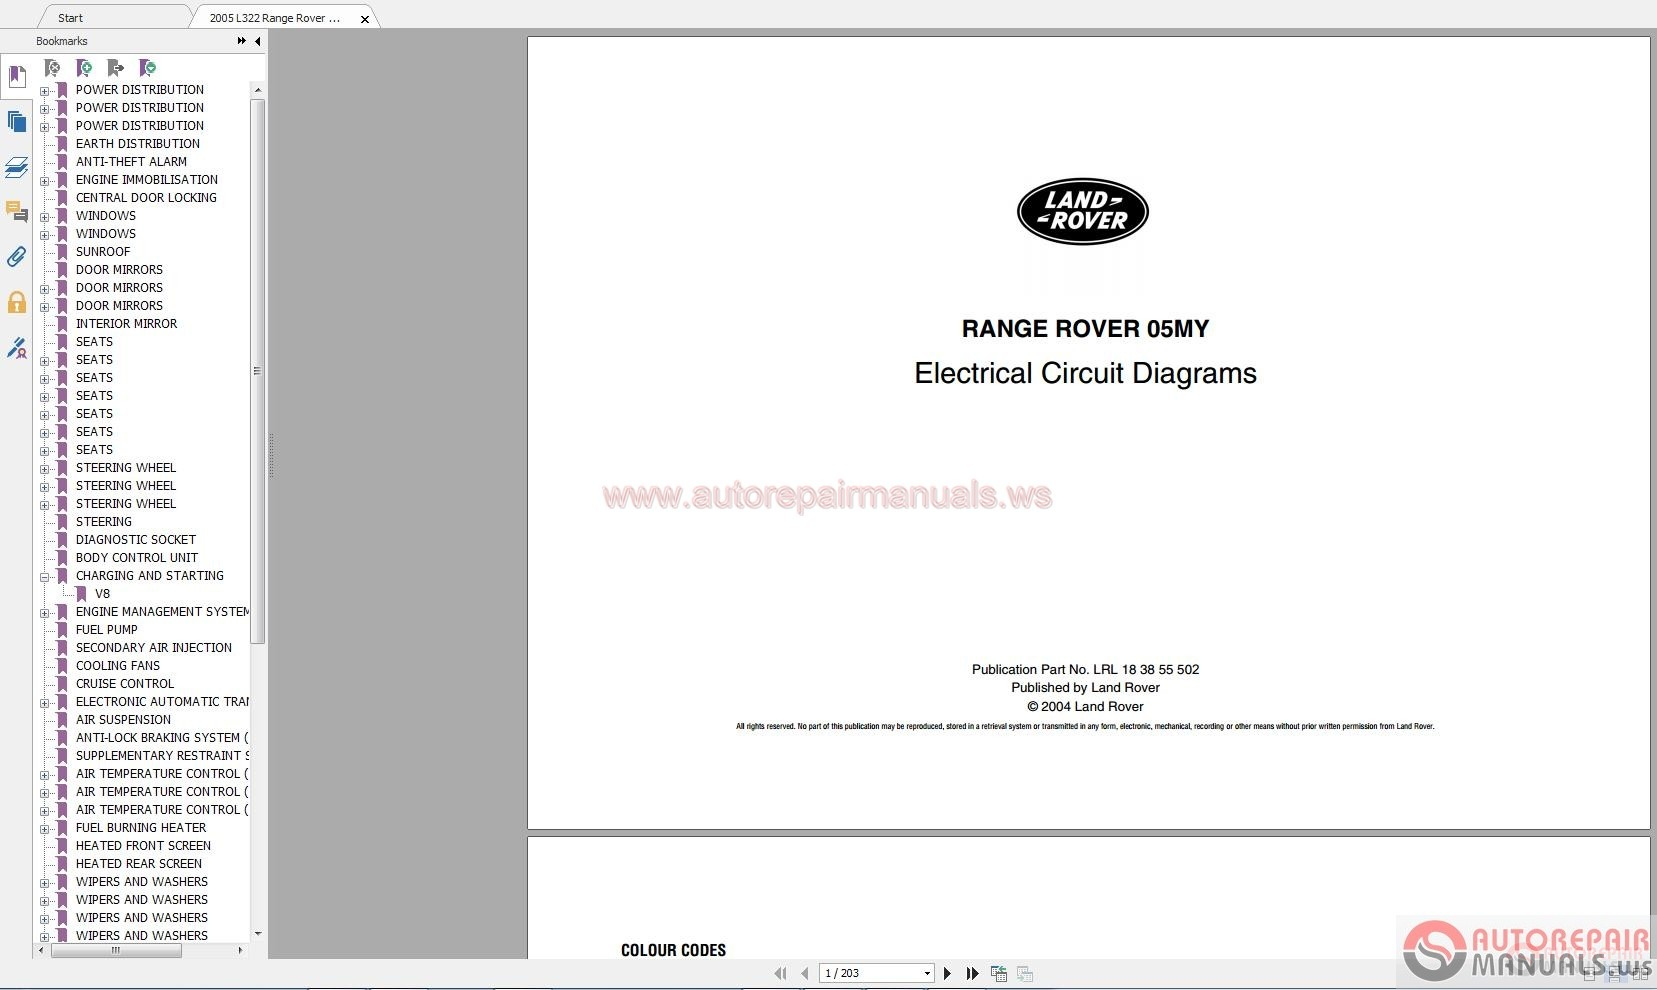 Land Rover Lr3 Manual Wiring Diagrams Product User Guide Instruction 2006 Car Stereo Diagram Range Nas 2005 2008 Electrical Circuit Auto Repair Forum Discovery Alternator